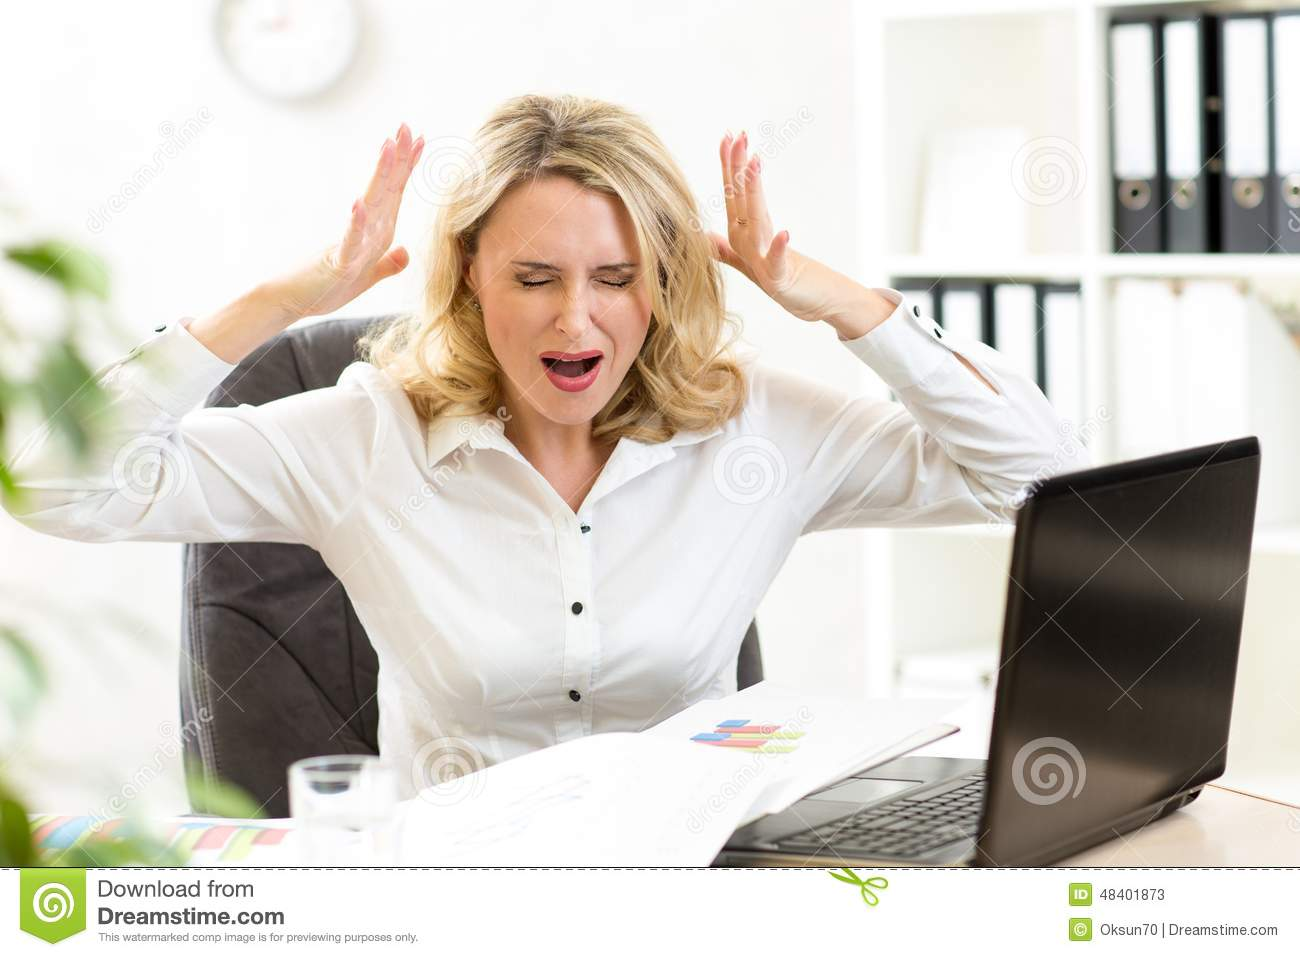 Stressed businesswoman screaming loudly at laptop